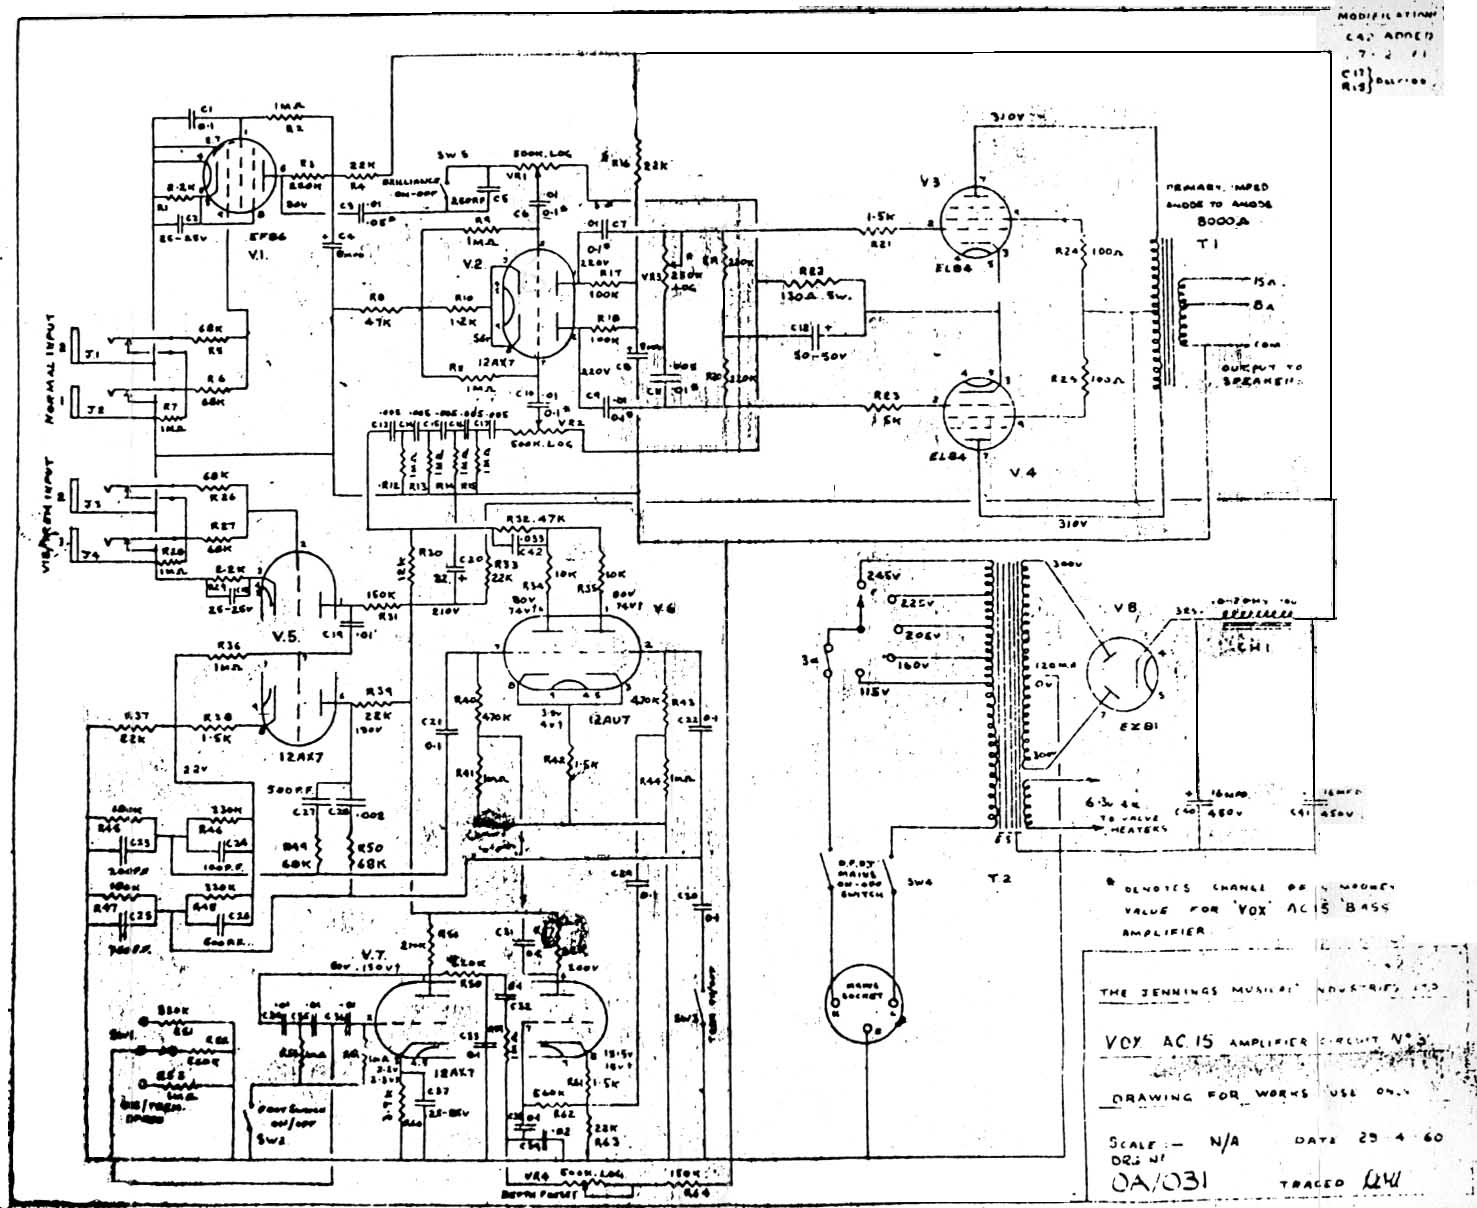 Vox Vintage Circuit Diagrams on isometric diagram, critical mass diagram, sequence diagram, electric current diagram, exploded view diagram, wiring diagram, cutaway diagram, schema diagram, block diagram, line diagram, circuit diagram, process diagram, yed graph diagram, problem solving diagram, network diagram, carm diagram, system diagram, flow diagram, concept diagram,